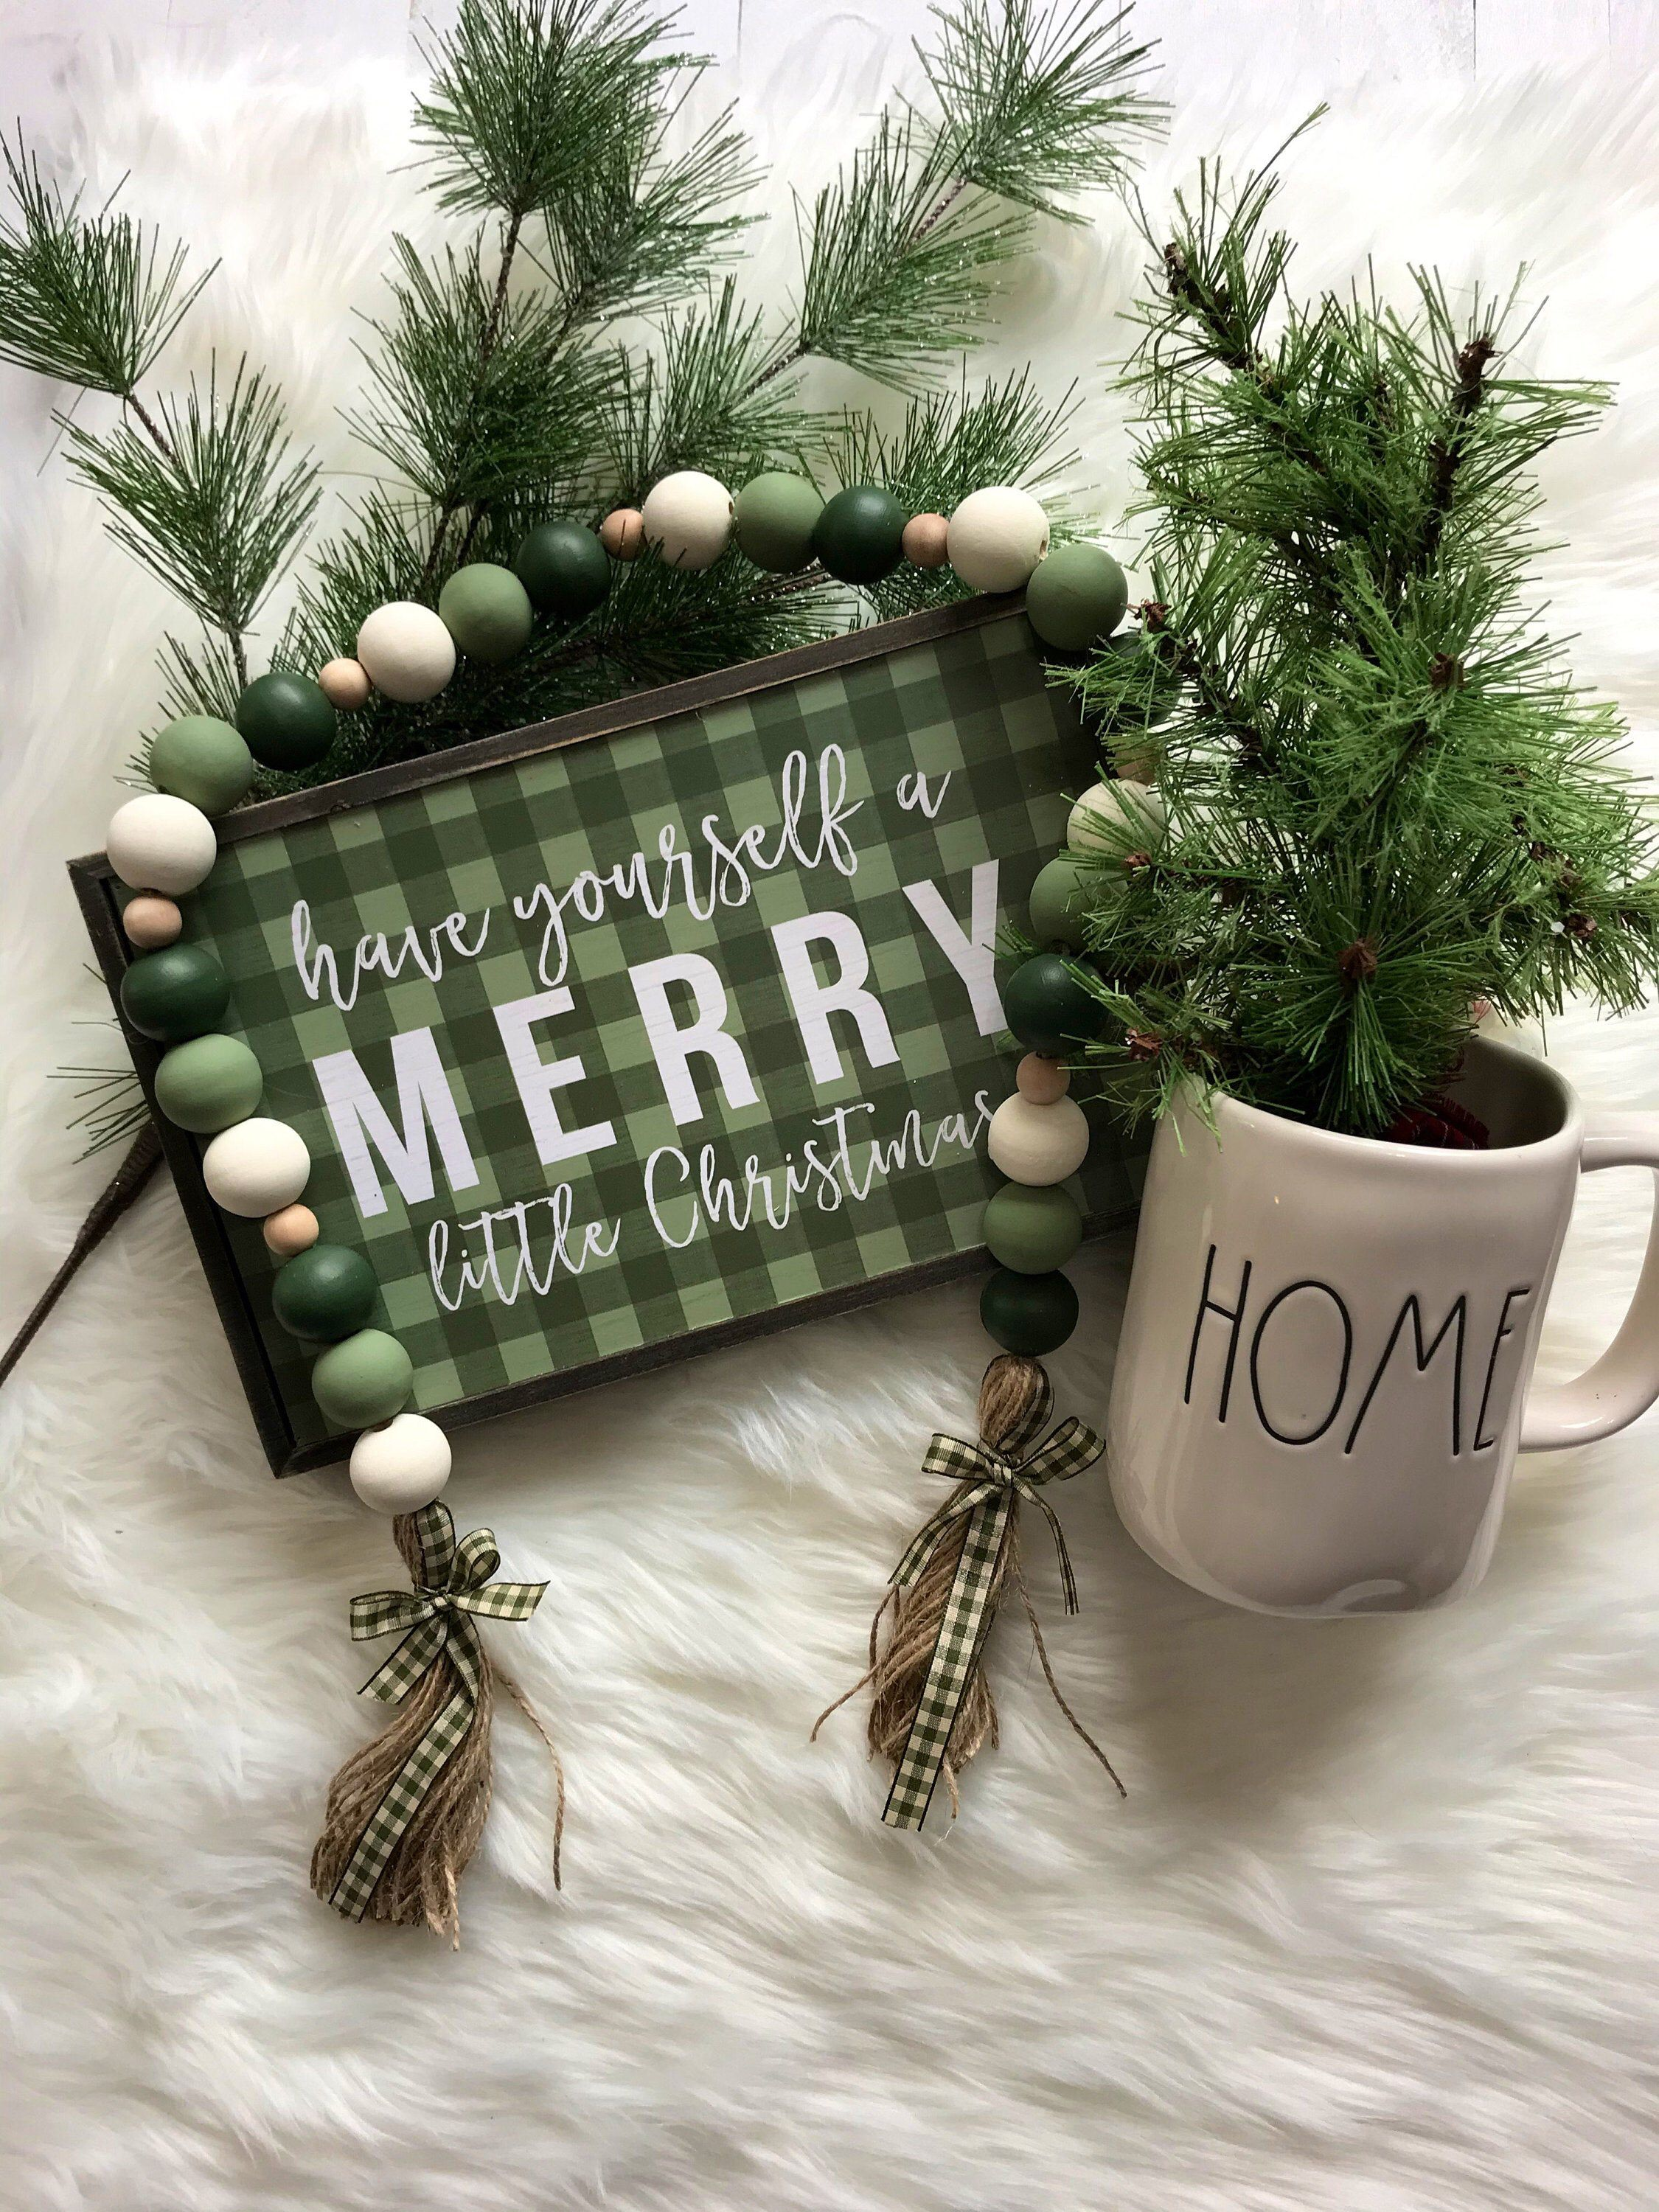 Christmas Wooden Bead Wreath with Tassels Decorated with Candy Pendant Farmhouse Wall Hanging Ornaments Wood Bead Garland Wreath for Christmas Decorations